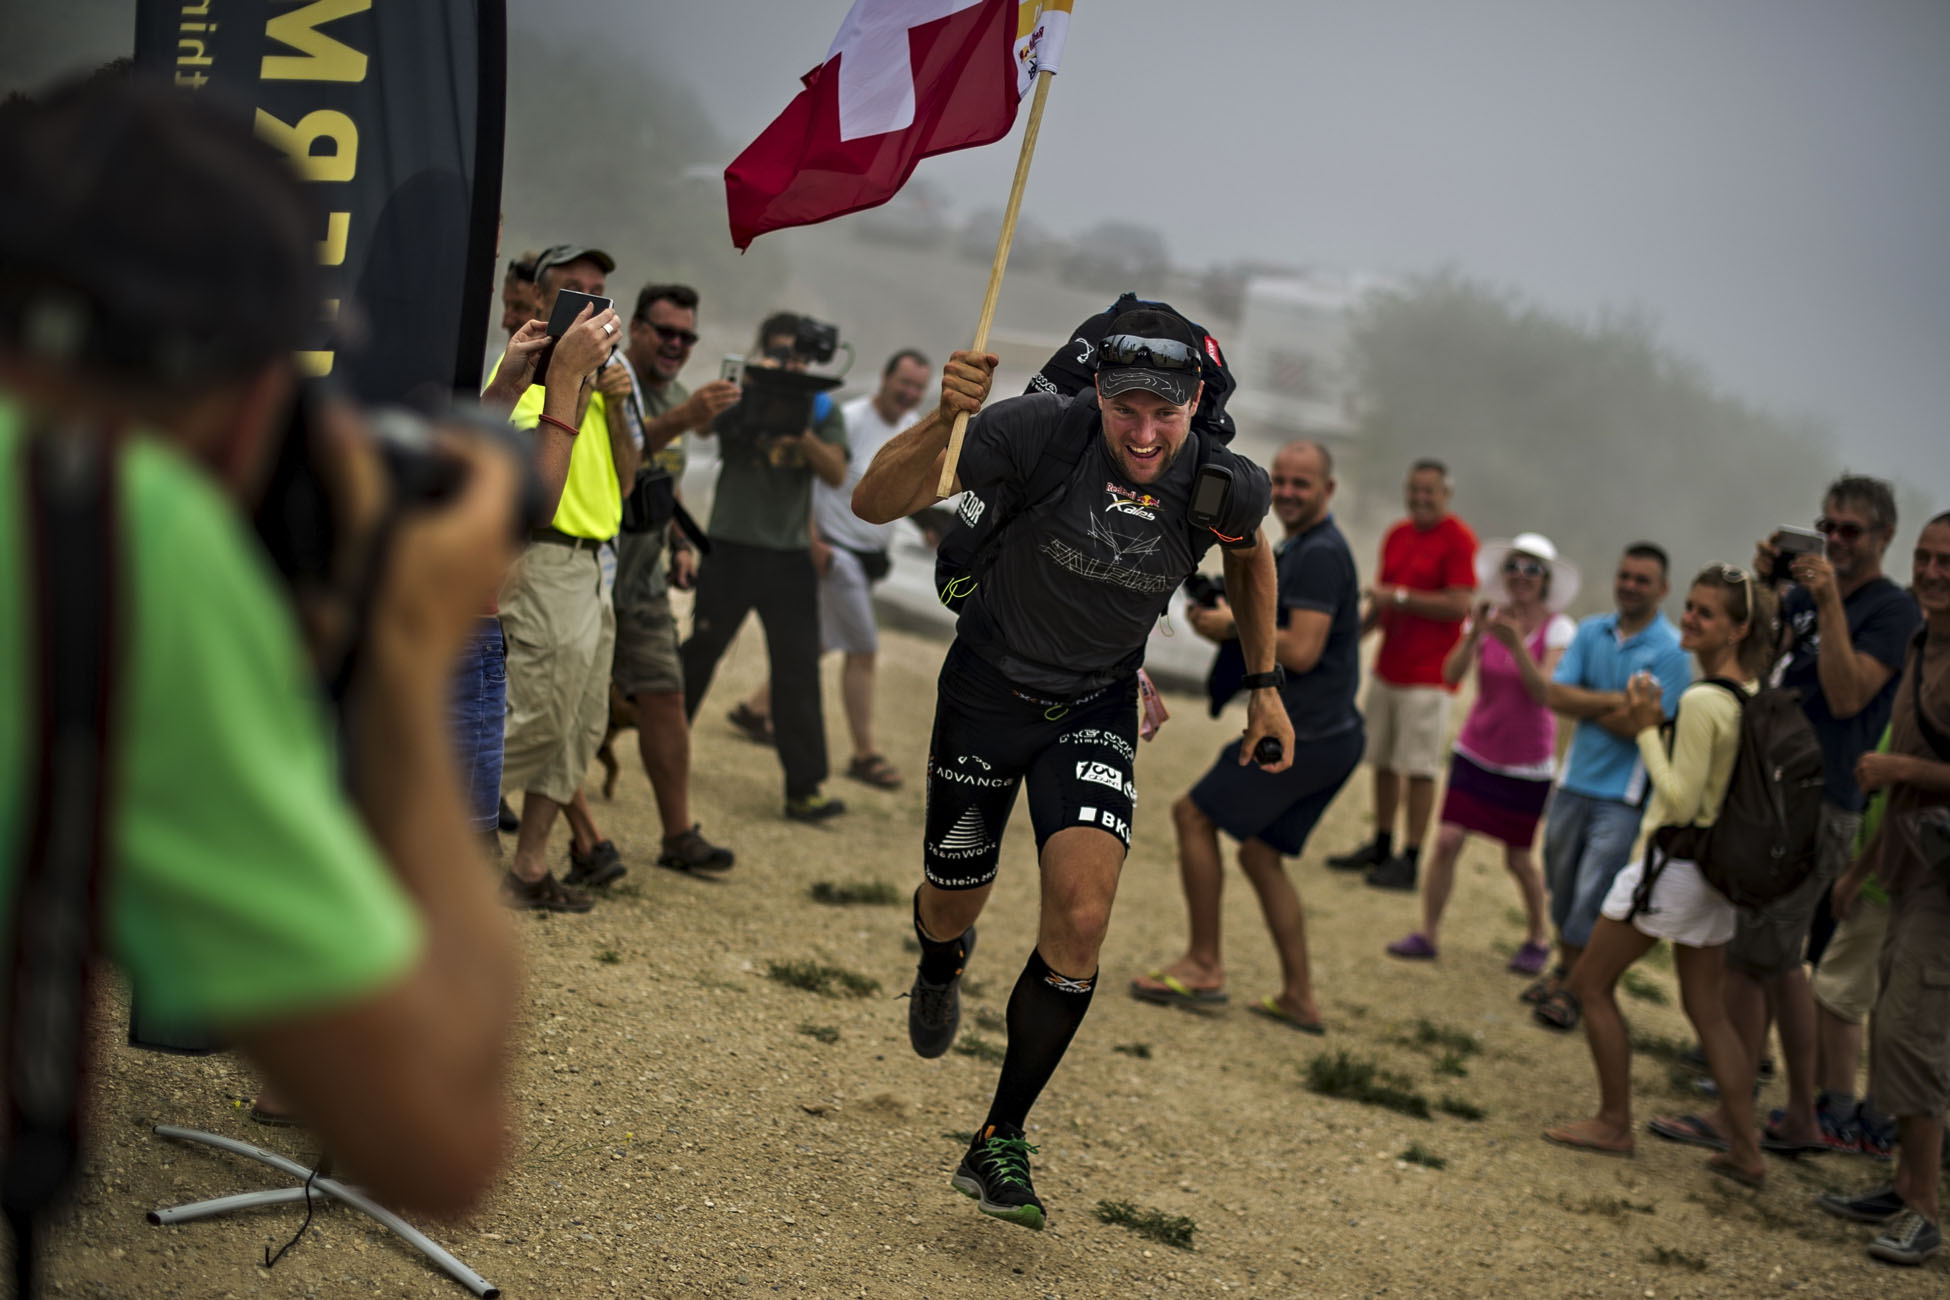 Chrigel Maurer of Switzerland arrives in Peille at the Red Bull X-Alps, France on July 13 2015. // Sebastian Marko/Red Bull Content Pool // P-20150728-00495 // Usage for editorial use only // Please go to www.redbullcontentpool.com for further information. //